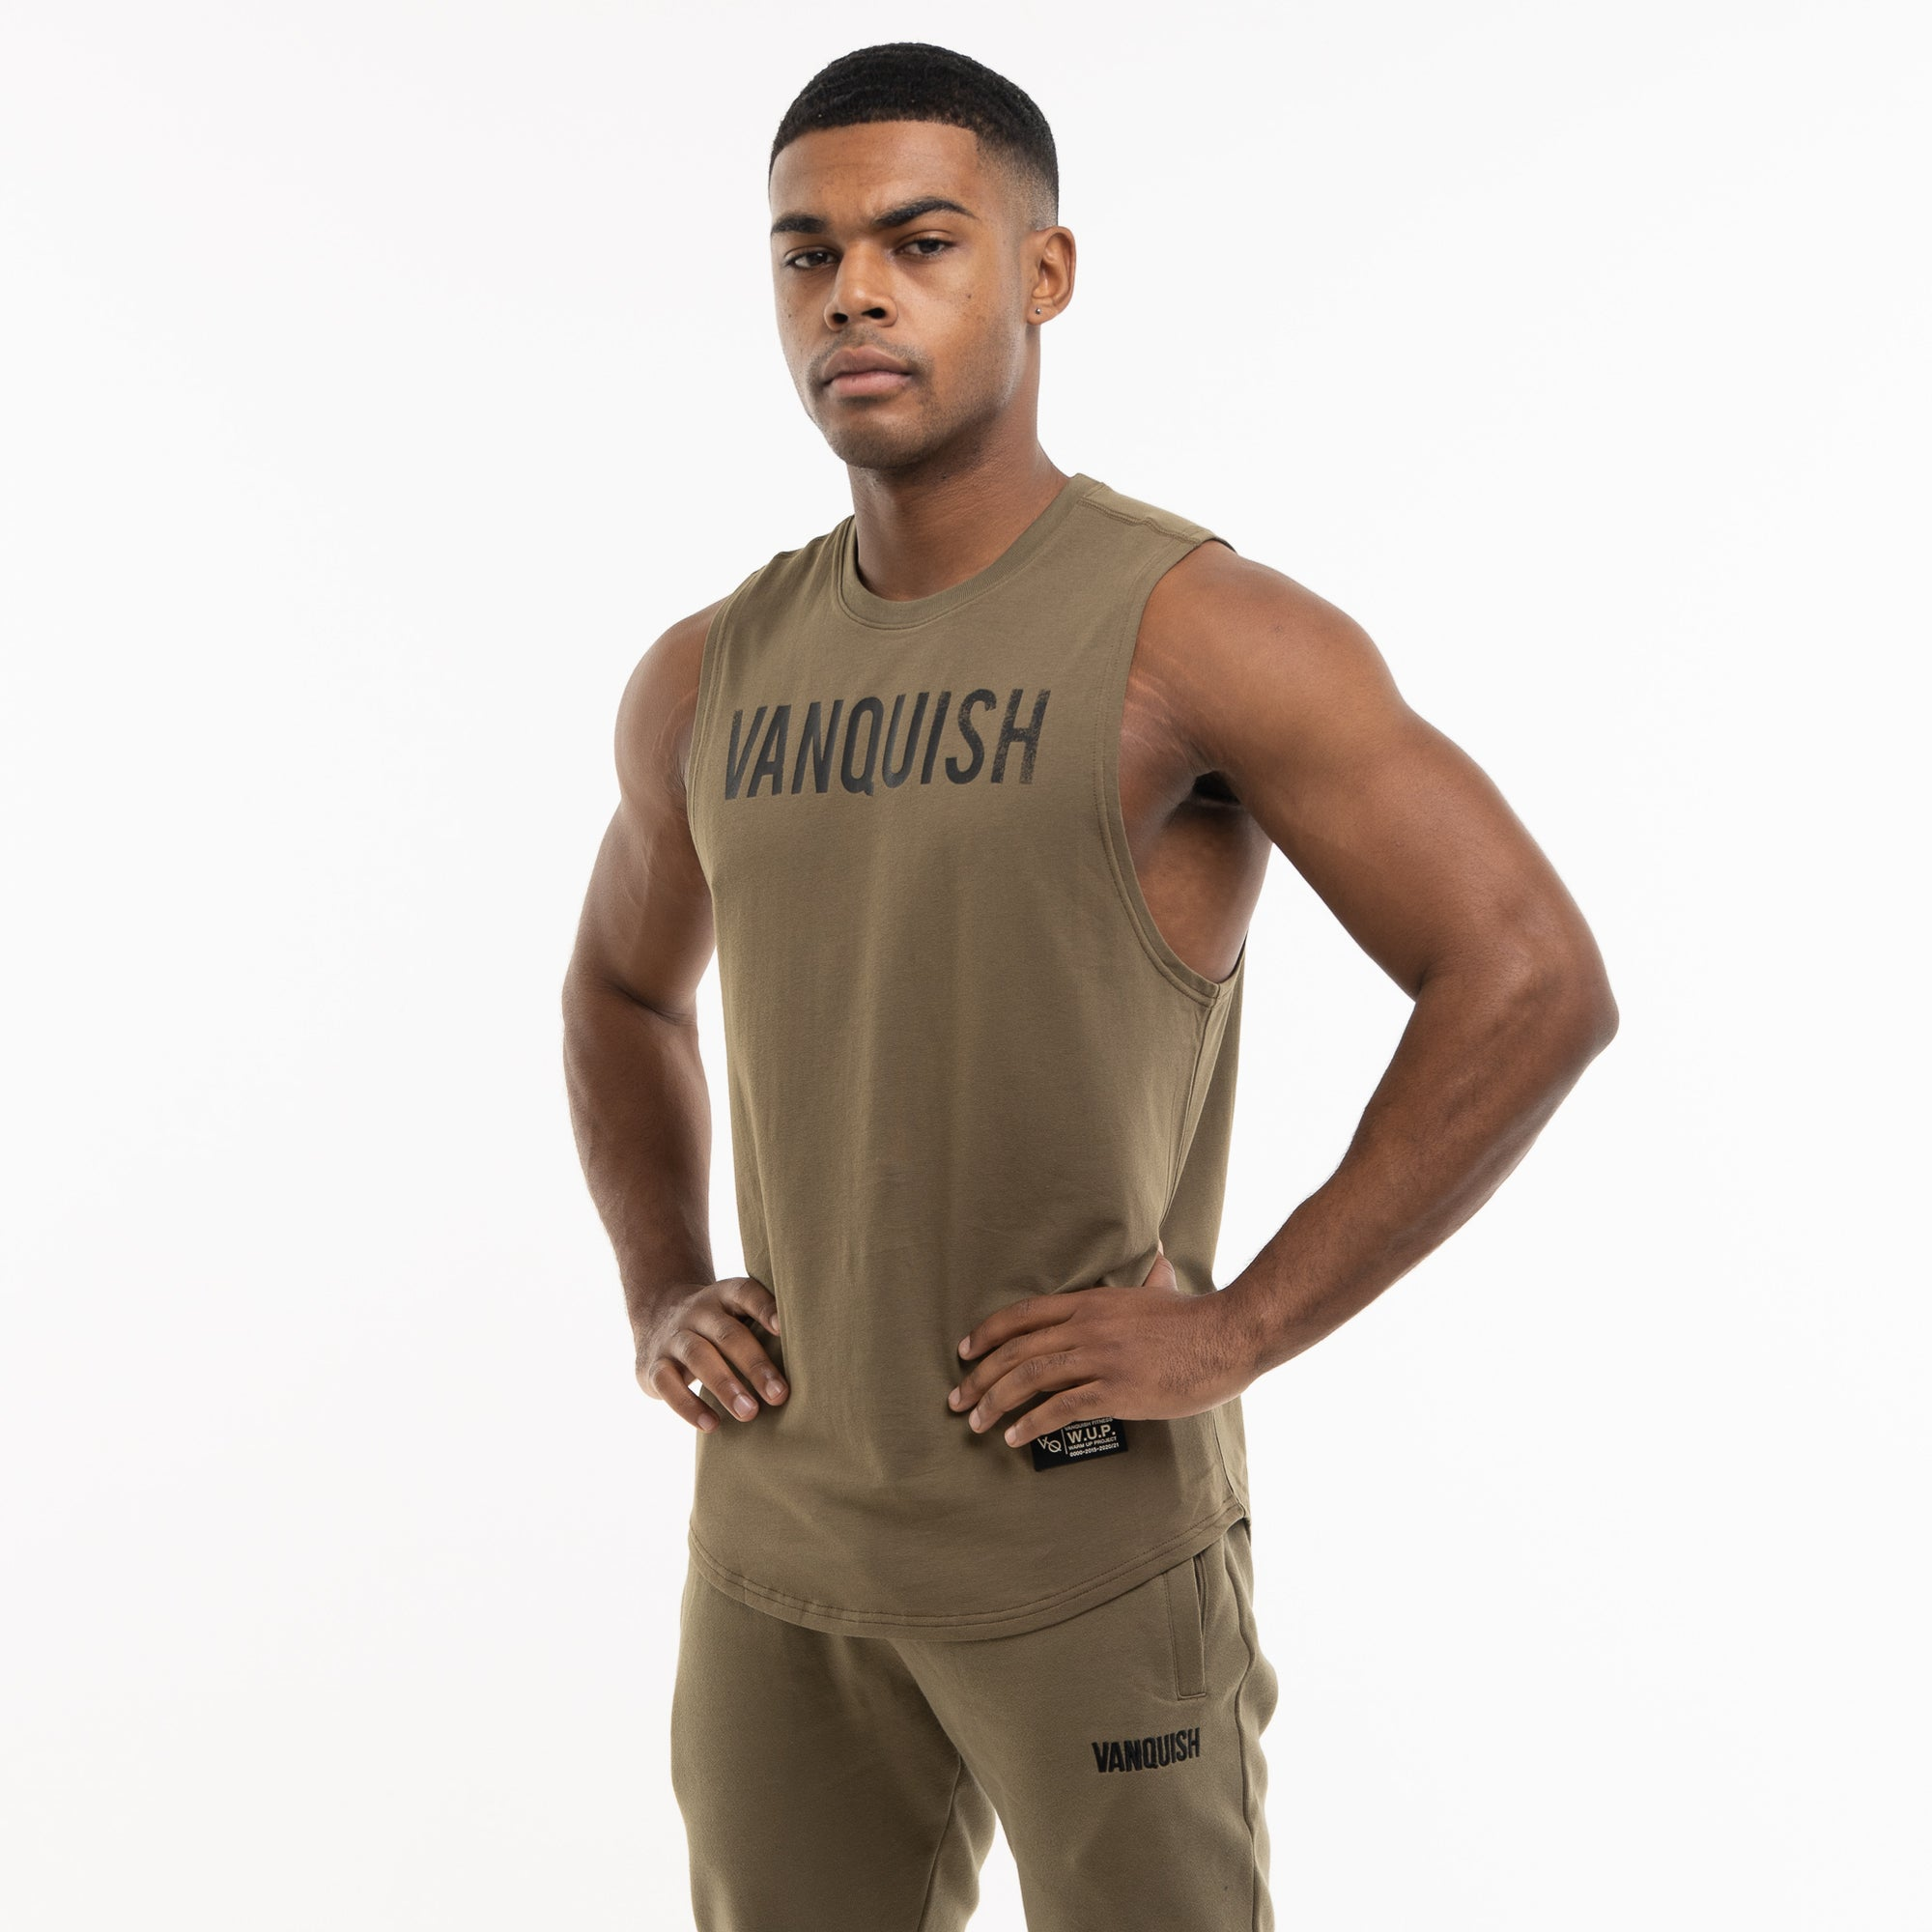 Vanquish Warm Up Project Olive Sleeveless T Shirt